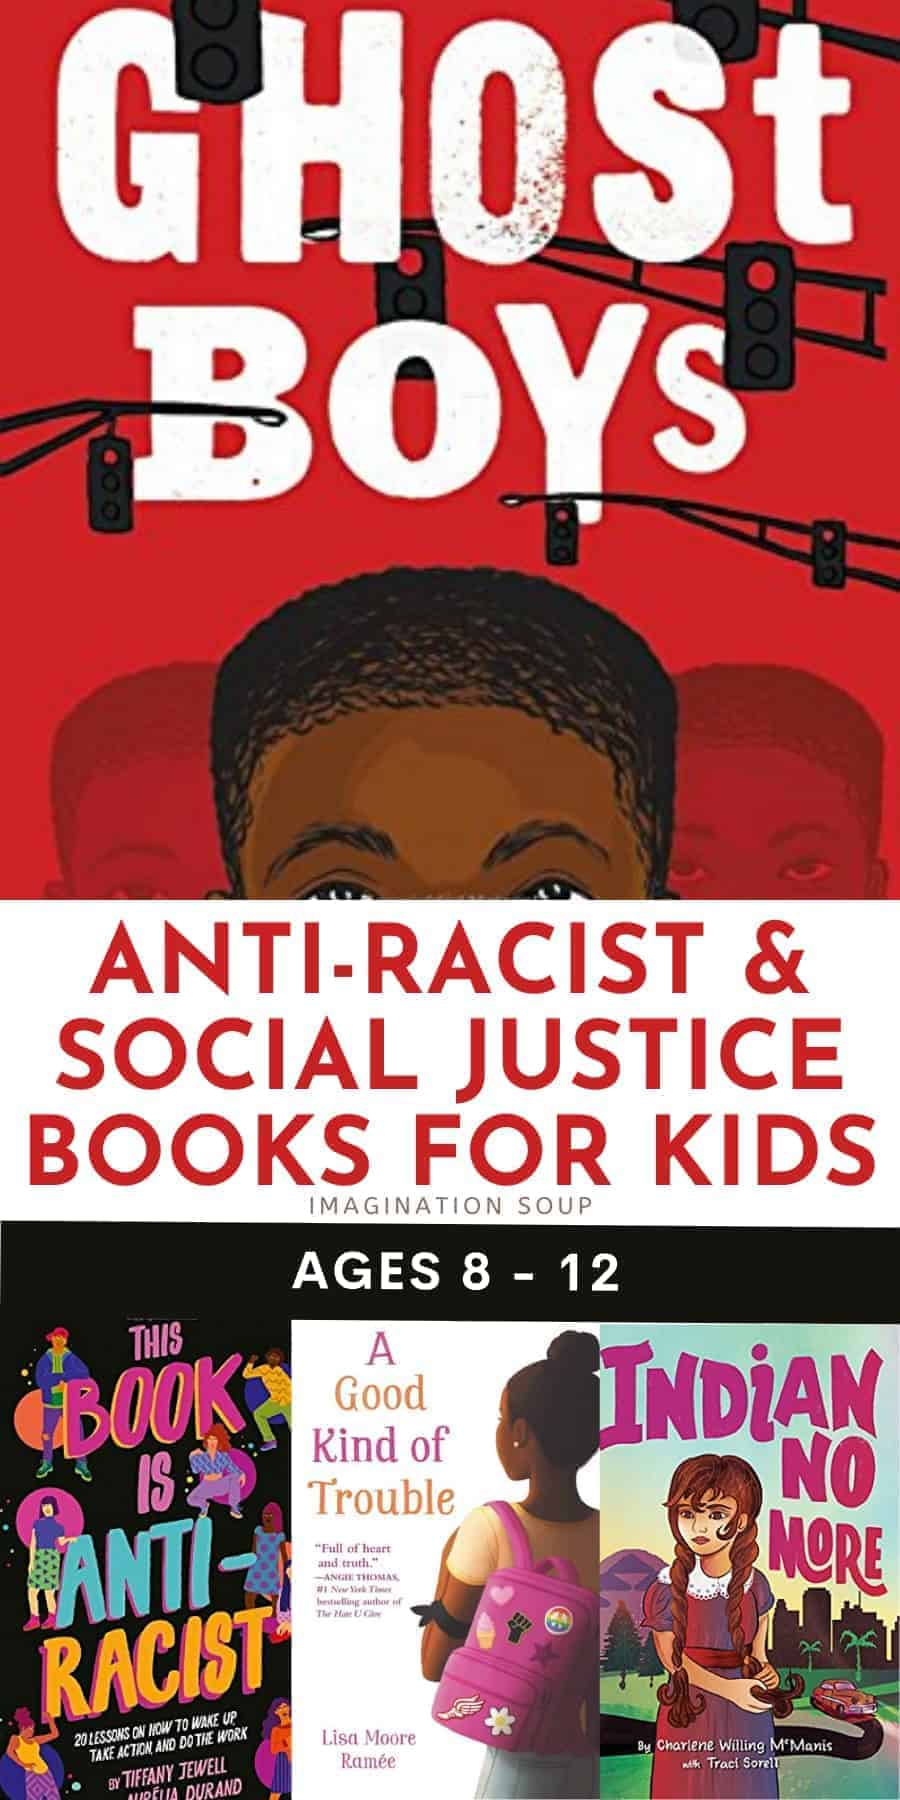 social justice and anti-racist books for kids